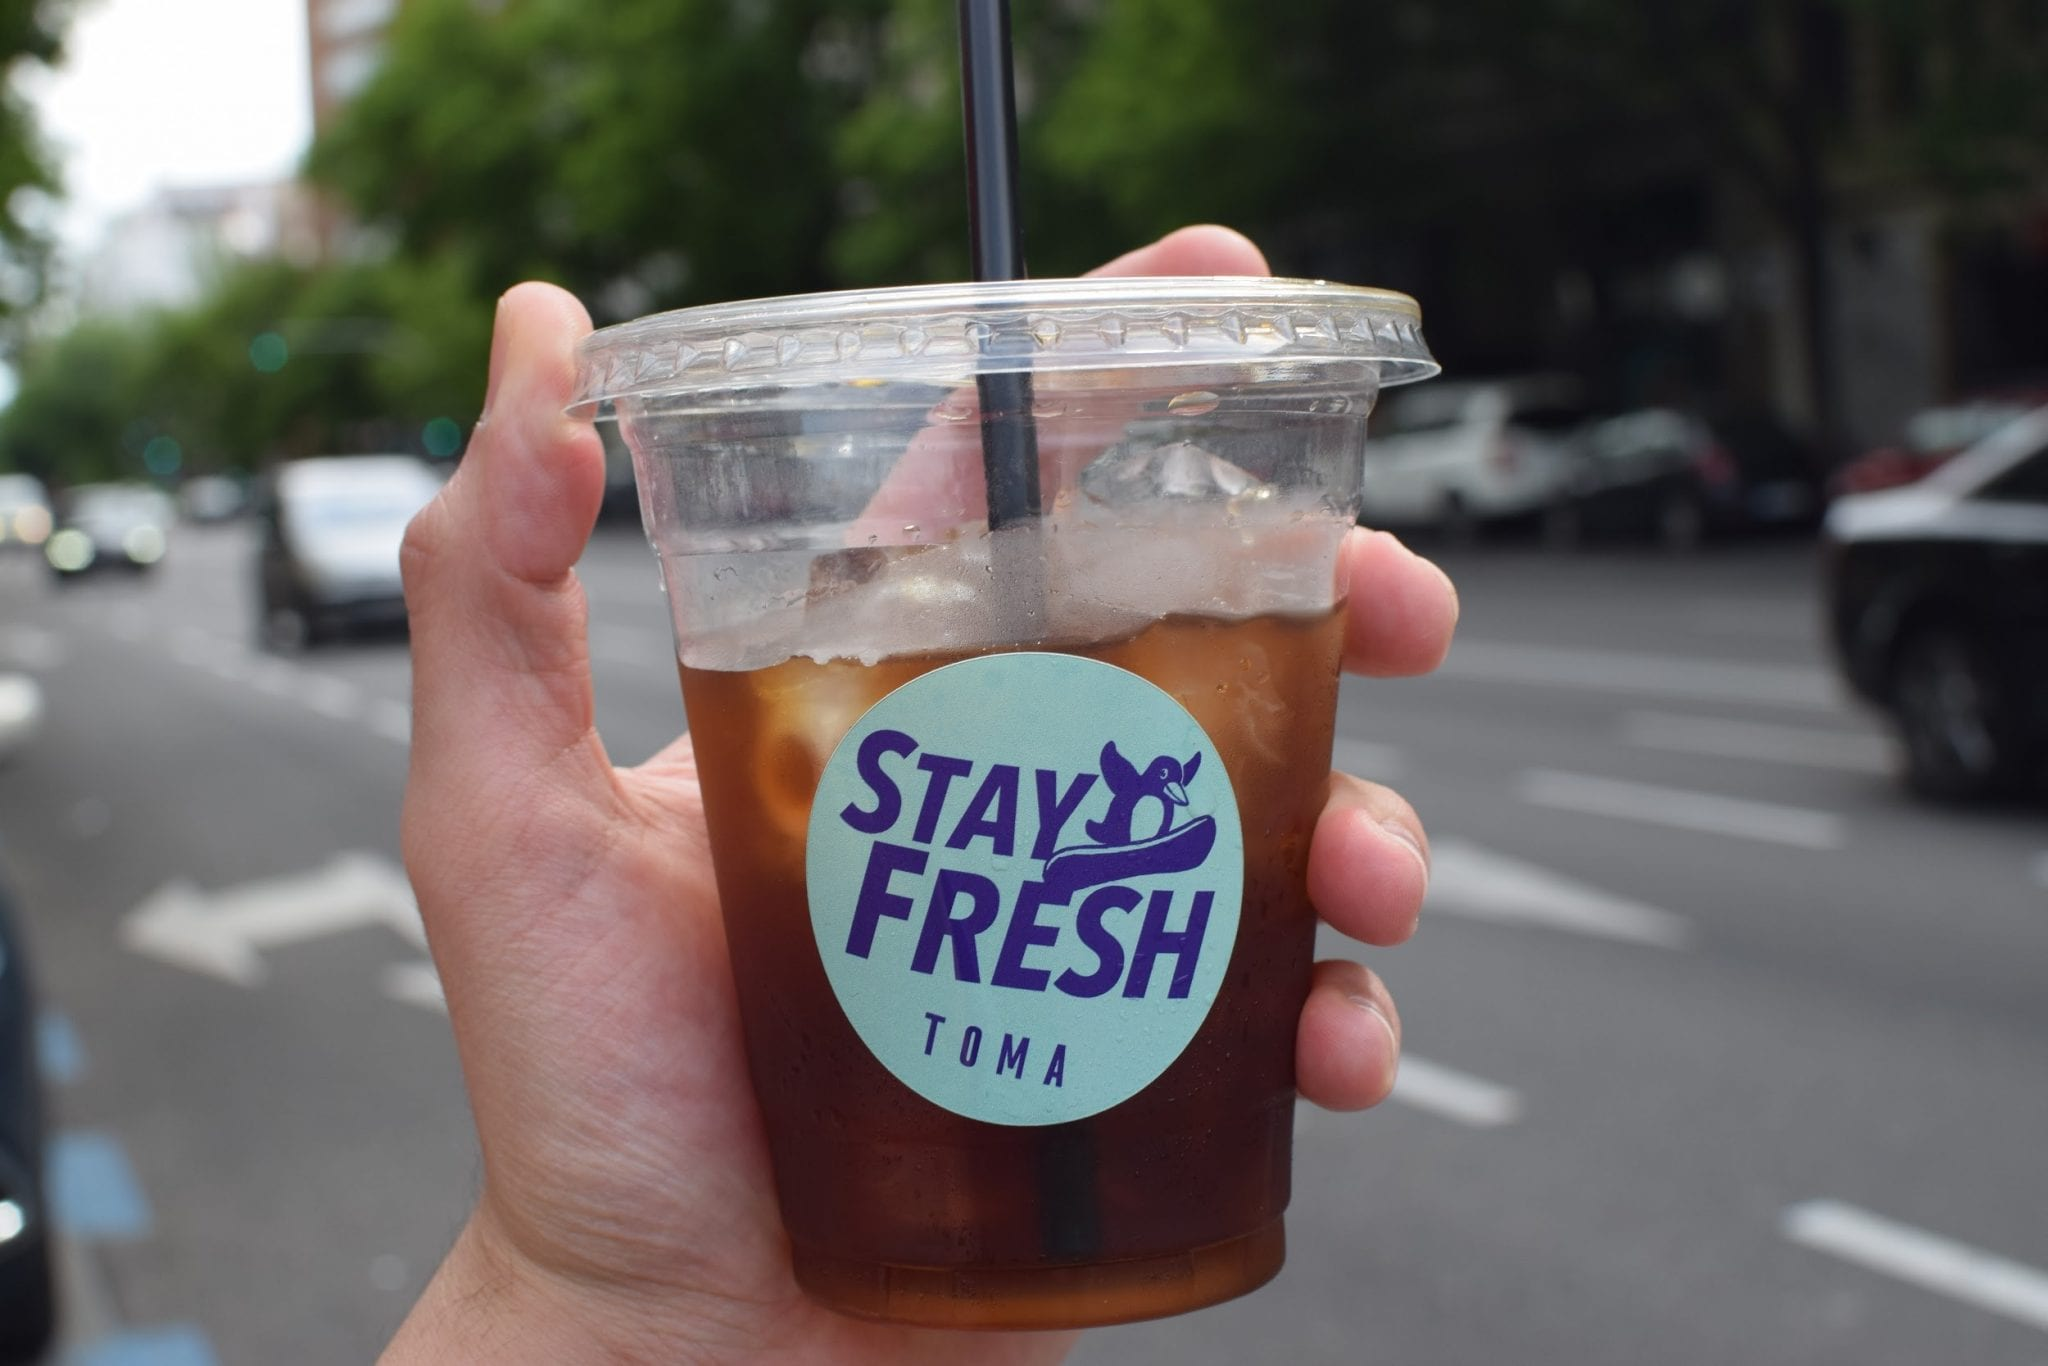 A cup of iced cold brew coffee from Toma cafe.